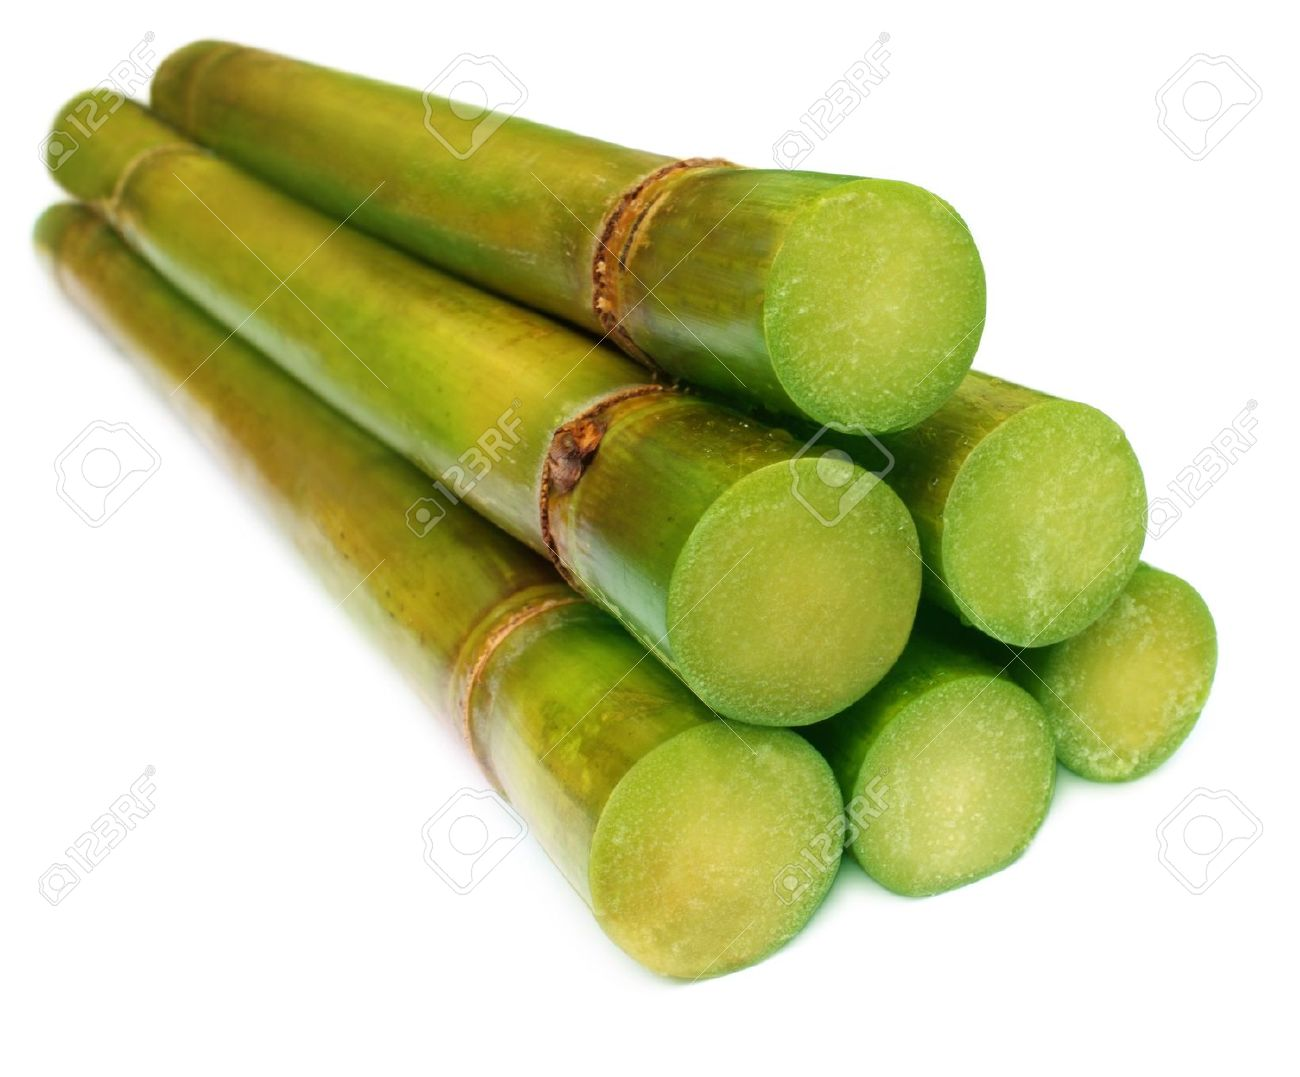 Bunch of fresh sugar cane over white background - 12931639